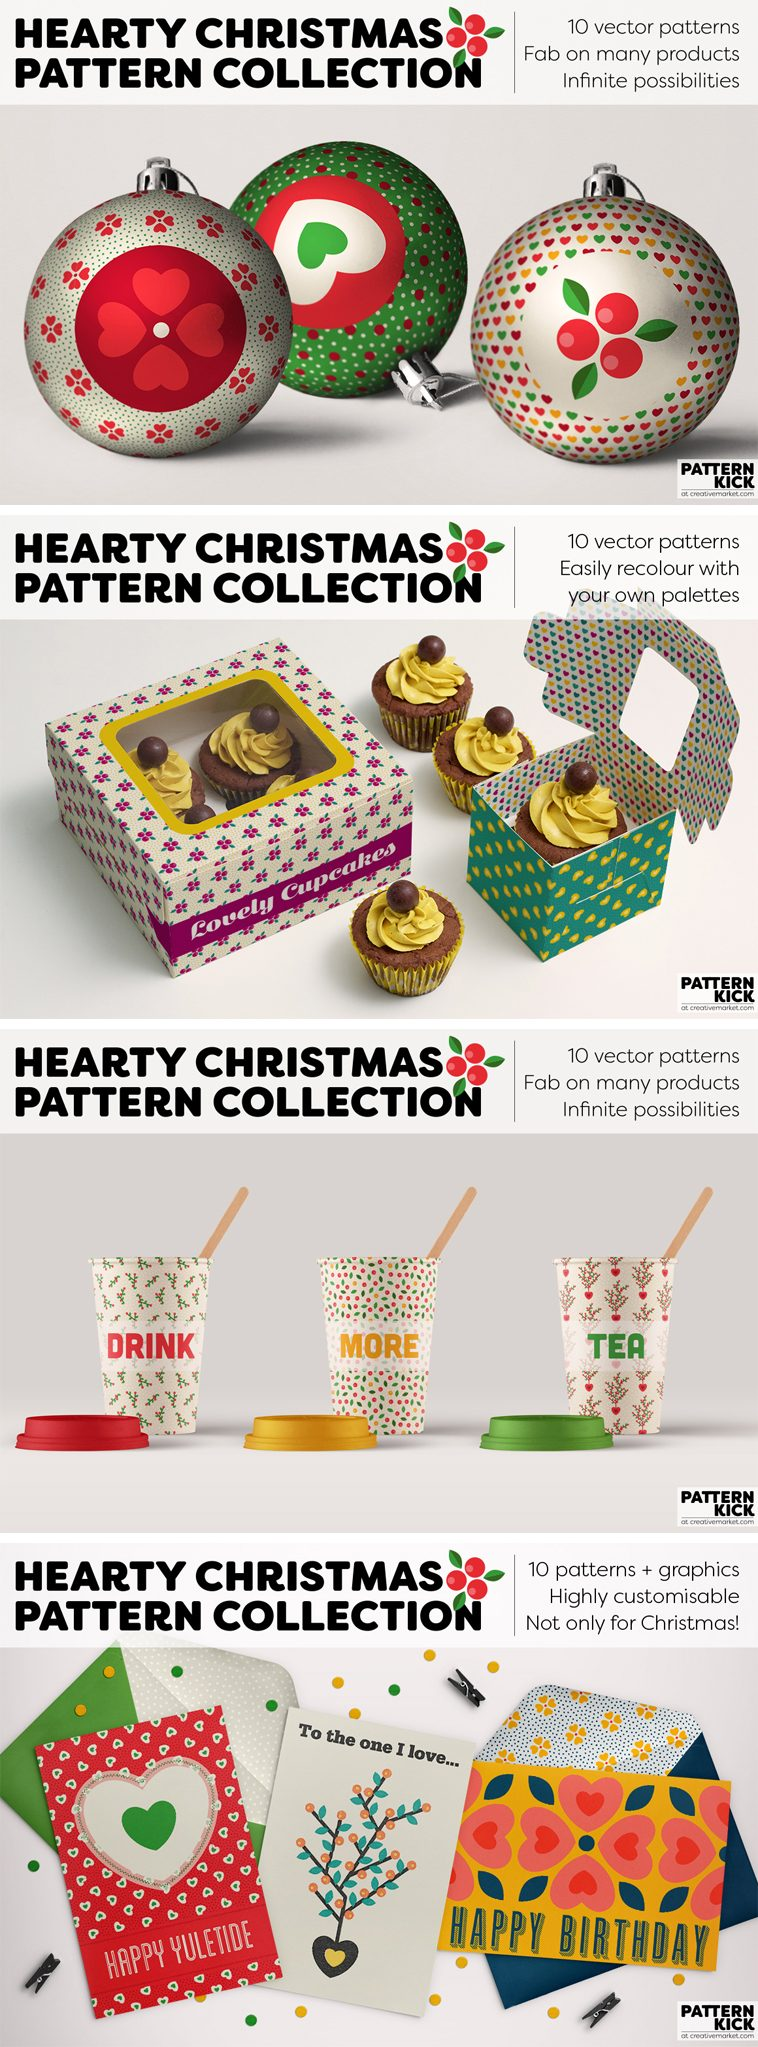 Christmas Prints and Patterns at Pattern Kick - Creative Market [2] | Pitter Pattern